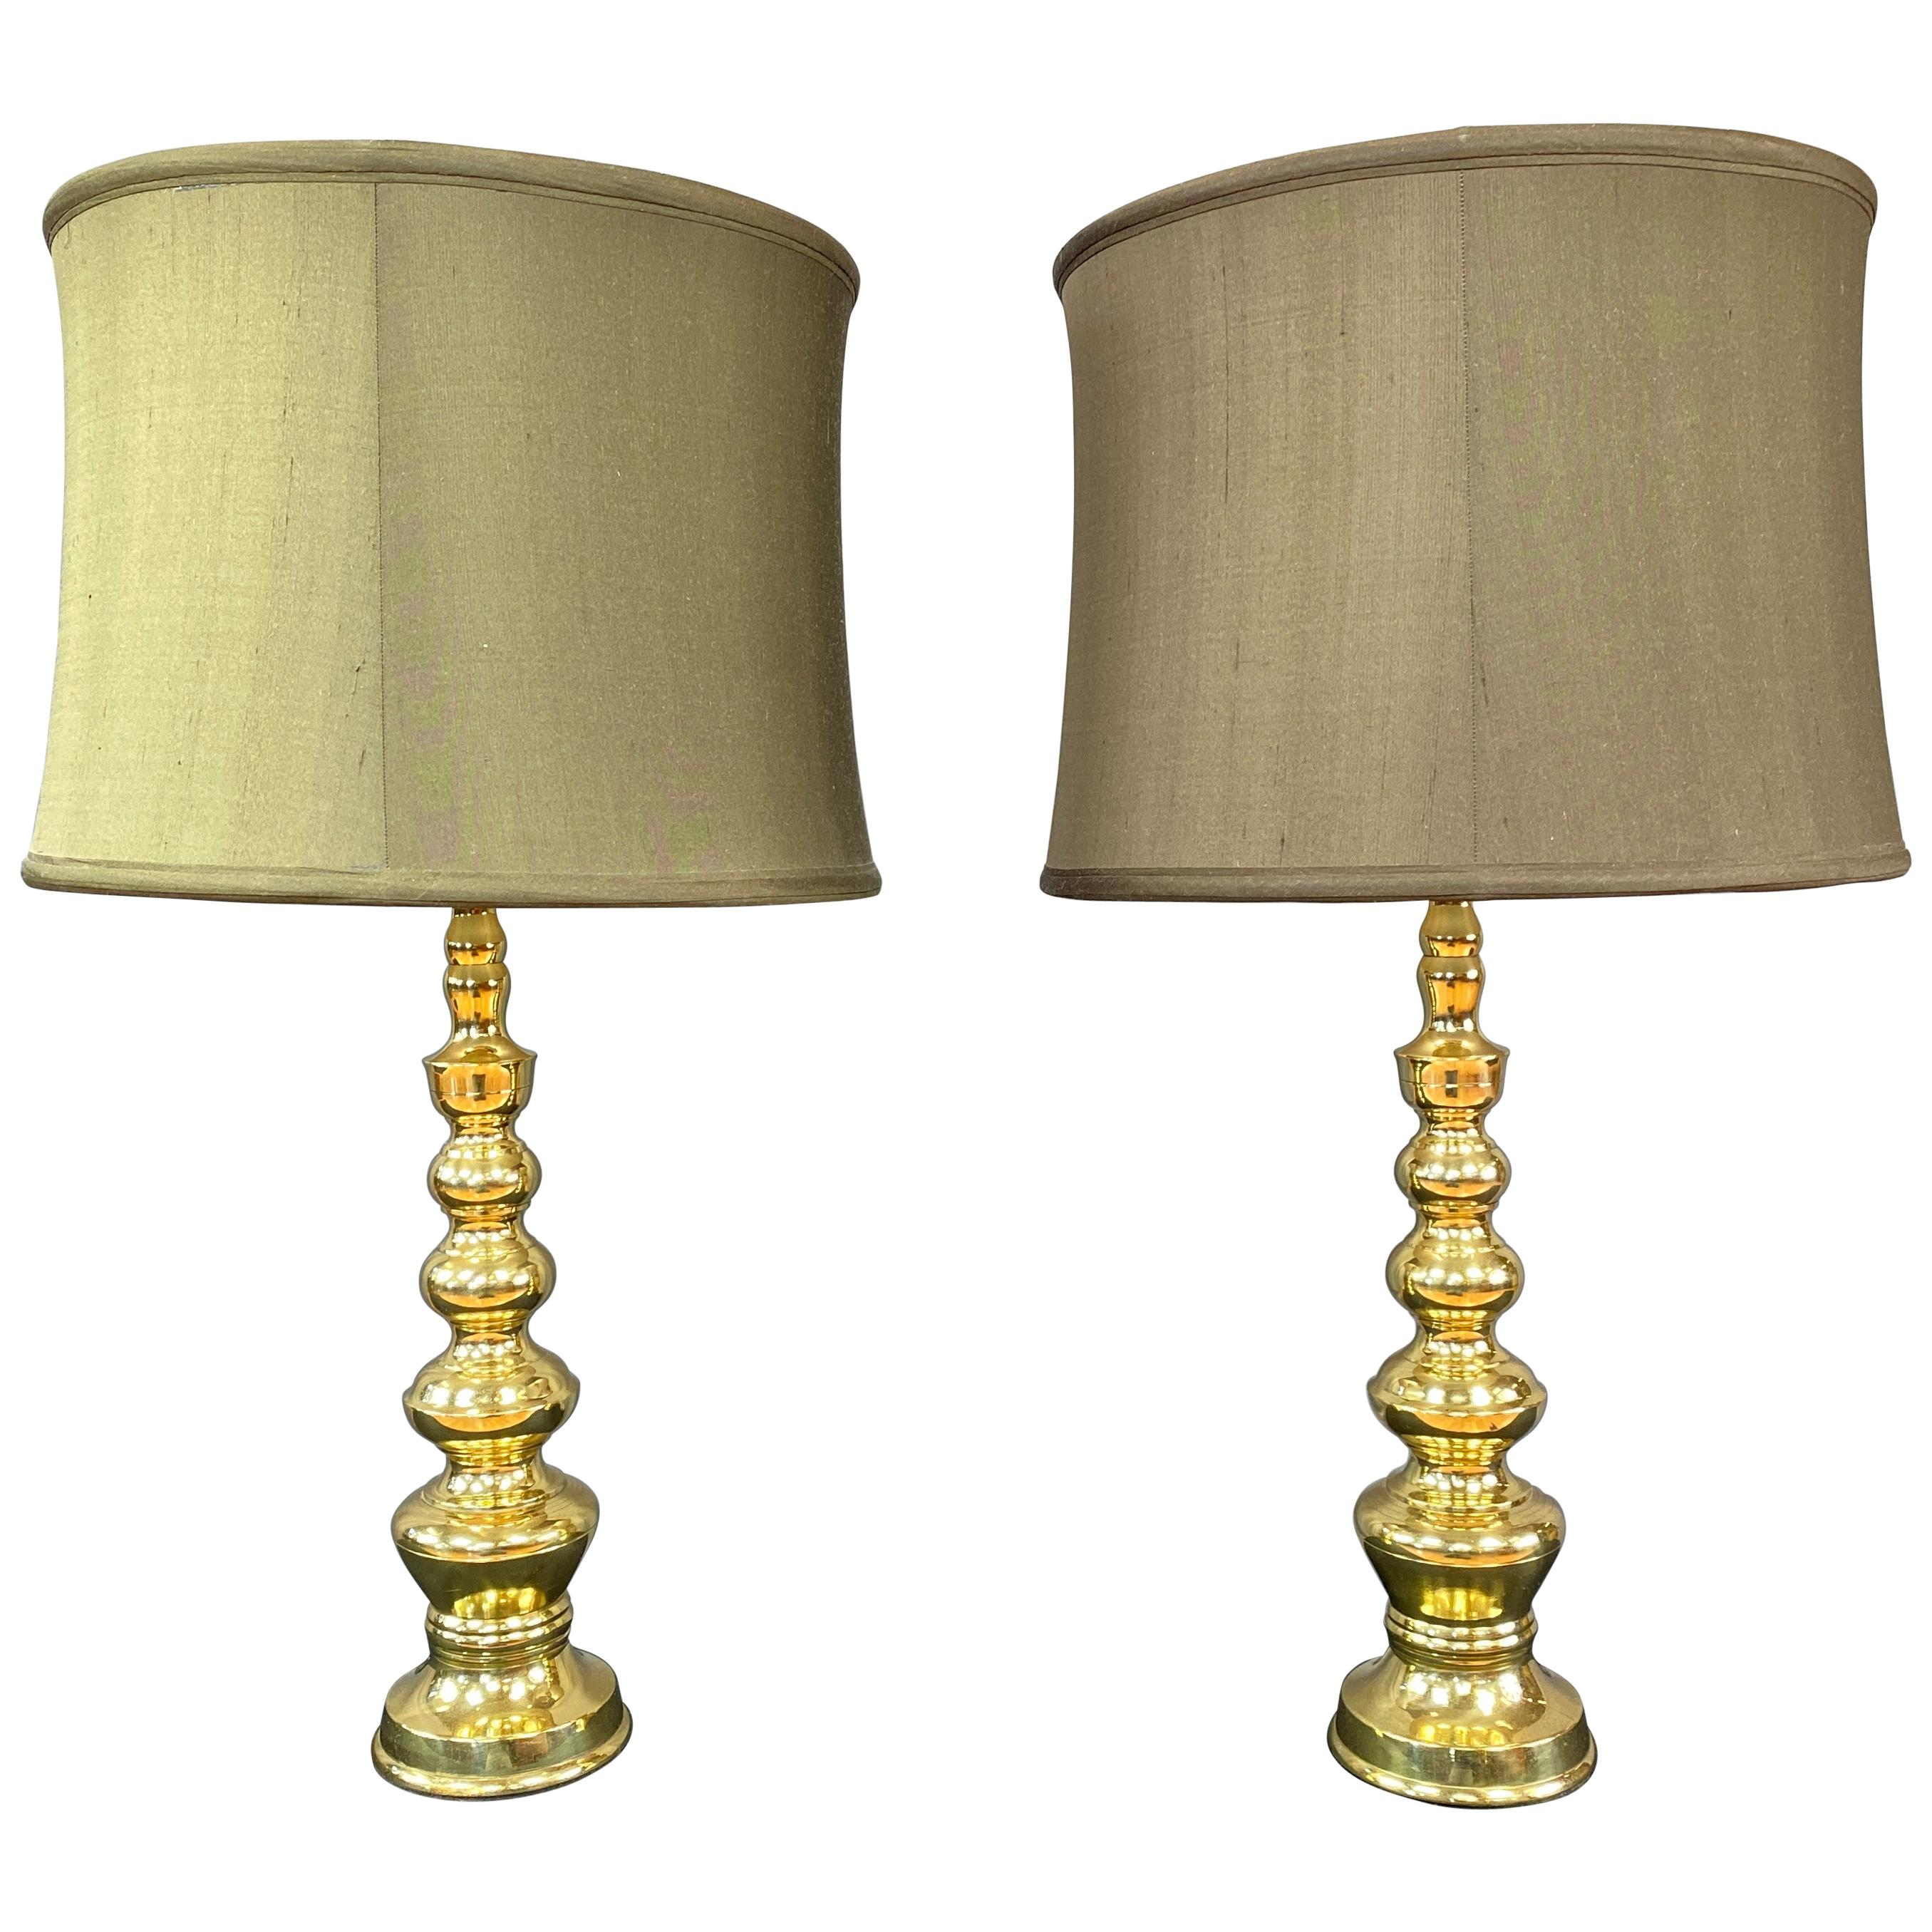 Pair of circa 1970s Vintage Polished Brass Lamps, Japan, Hollywood Regency